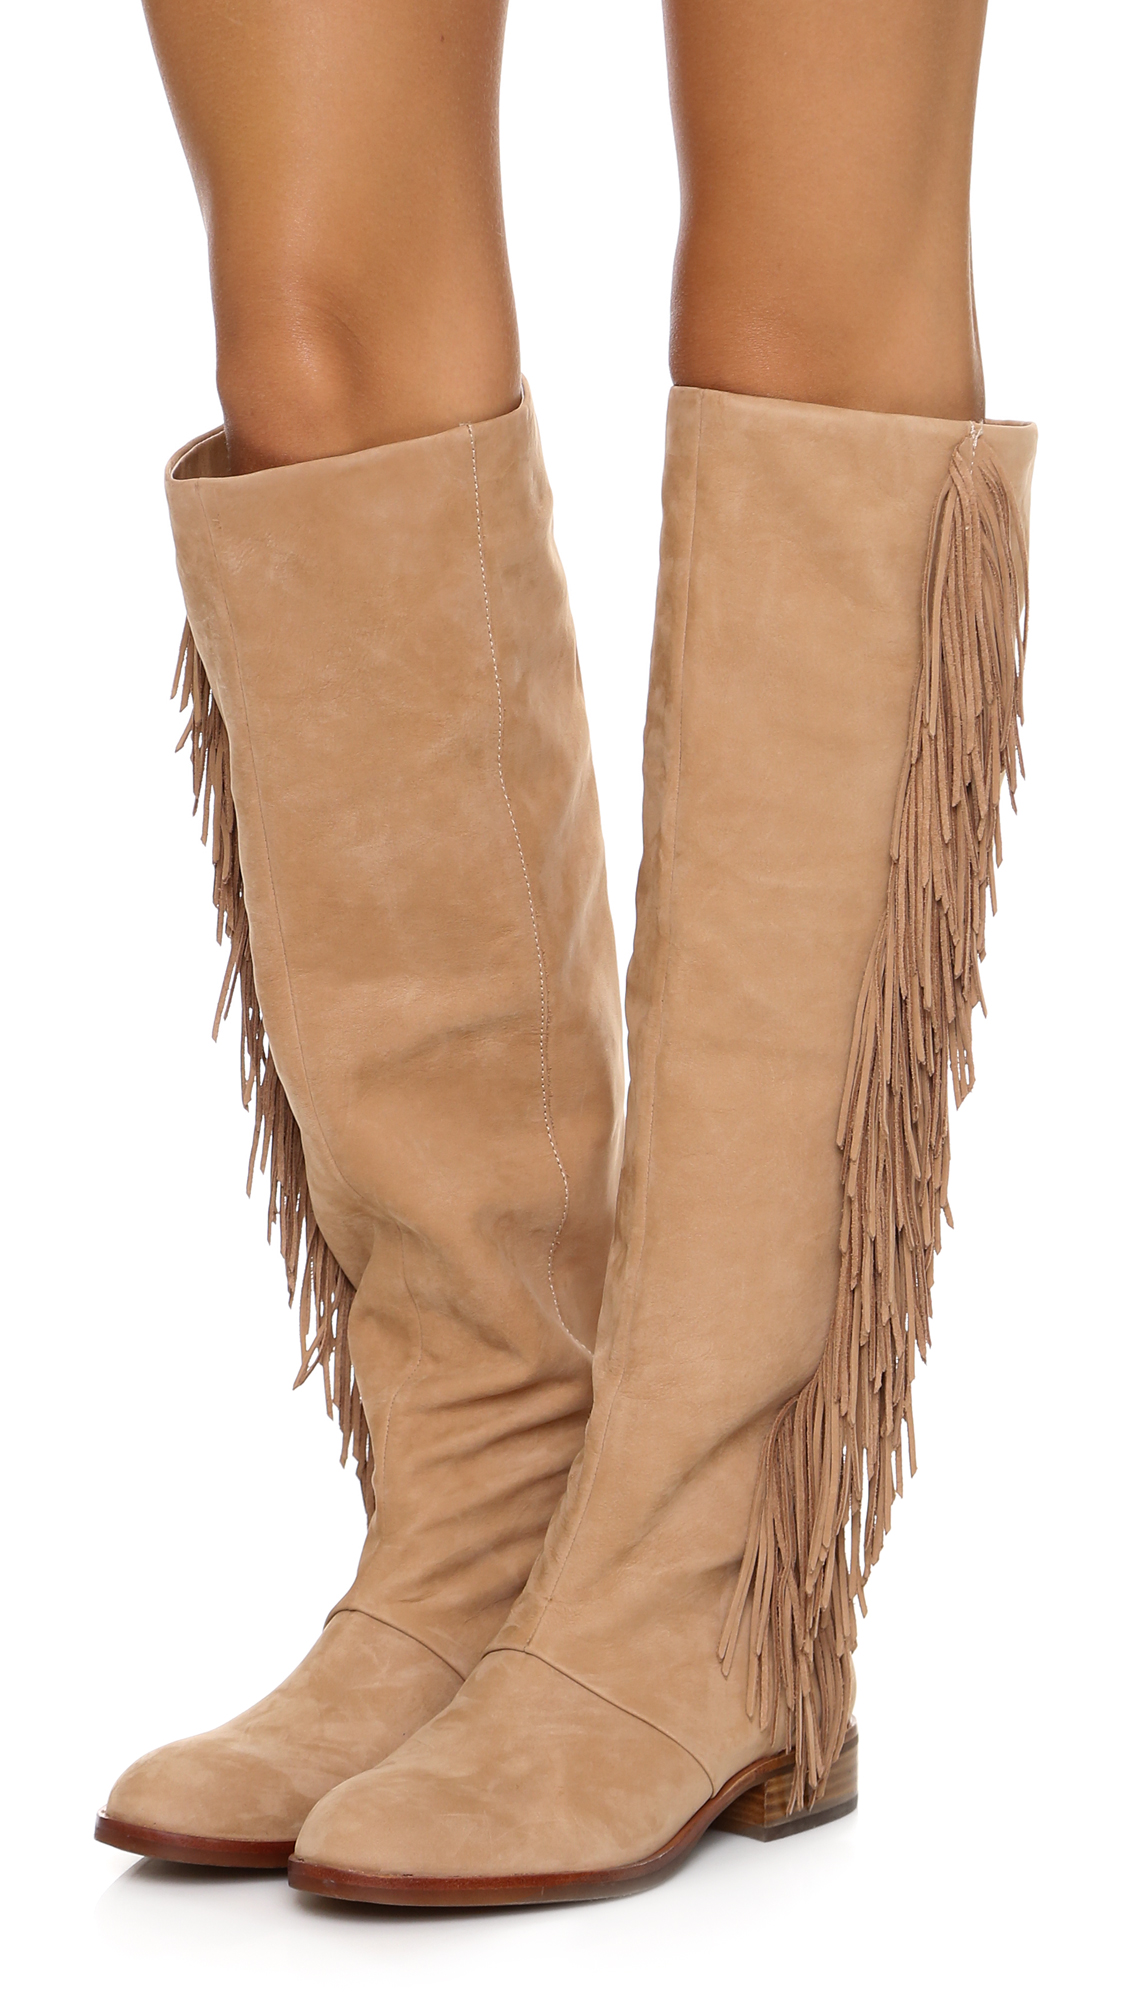 Sam Edelman Josephine Fringe Boots | 15% off first app purchase ...